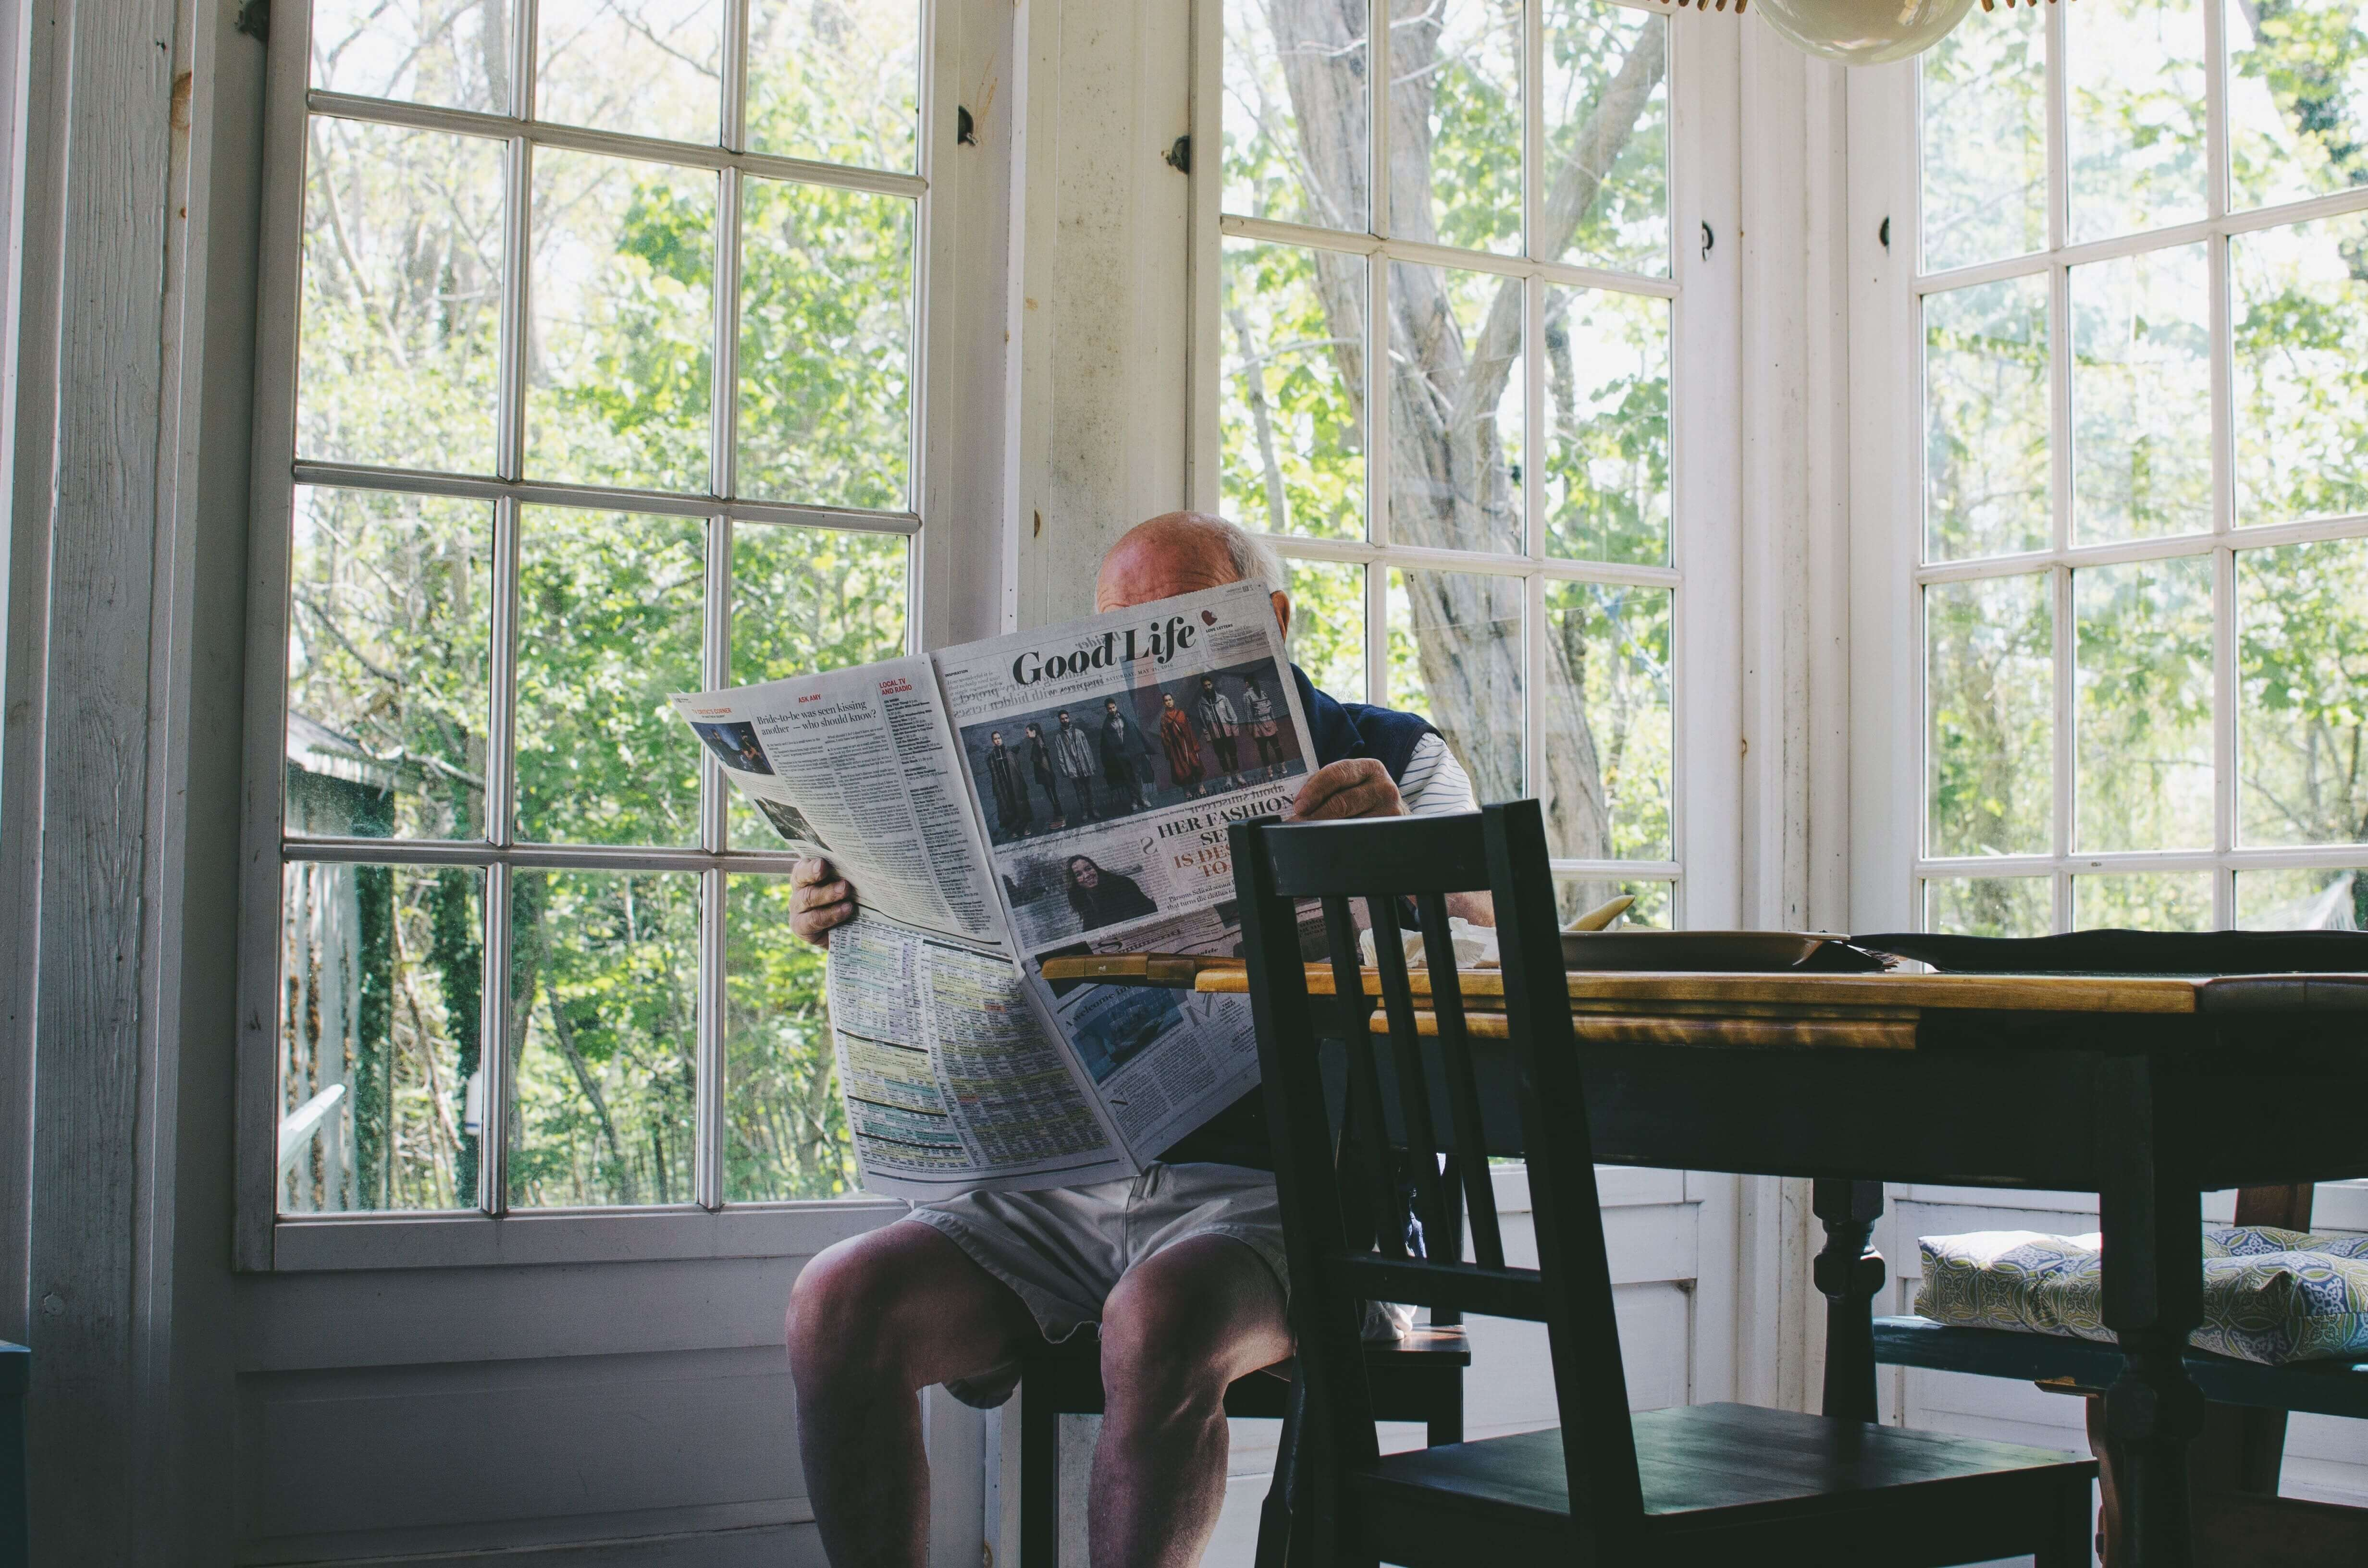 Senior man reading newspaper in brightly lit dining room